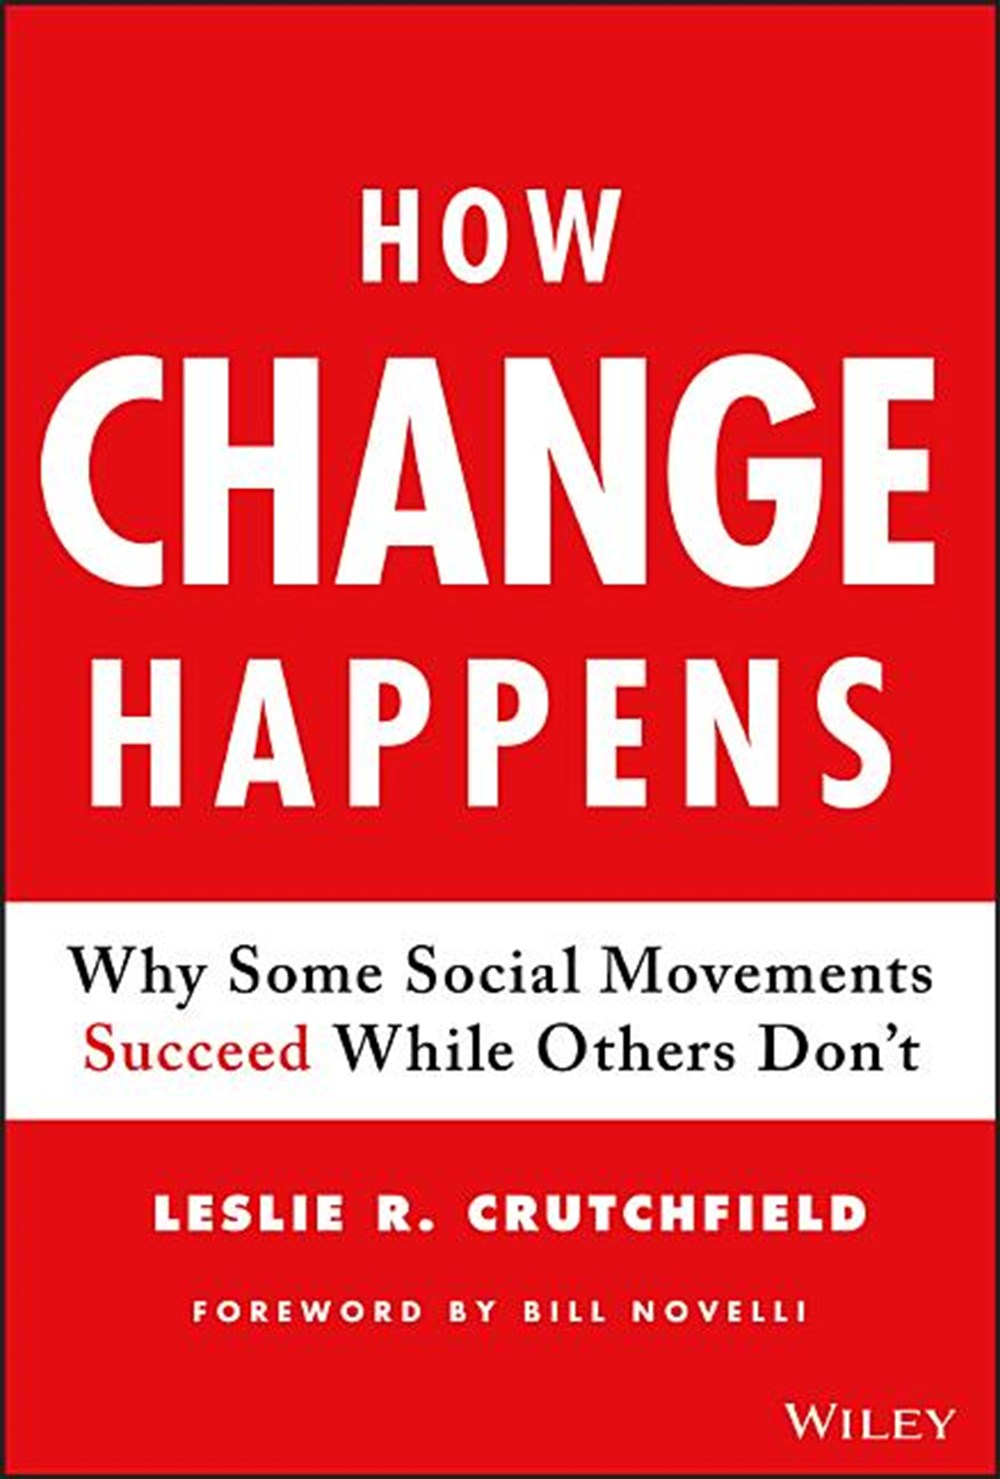 How Change Happens Why Some Social Movements Succeed While Others Don't